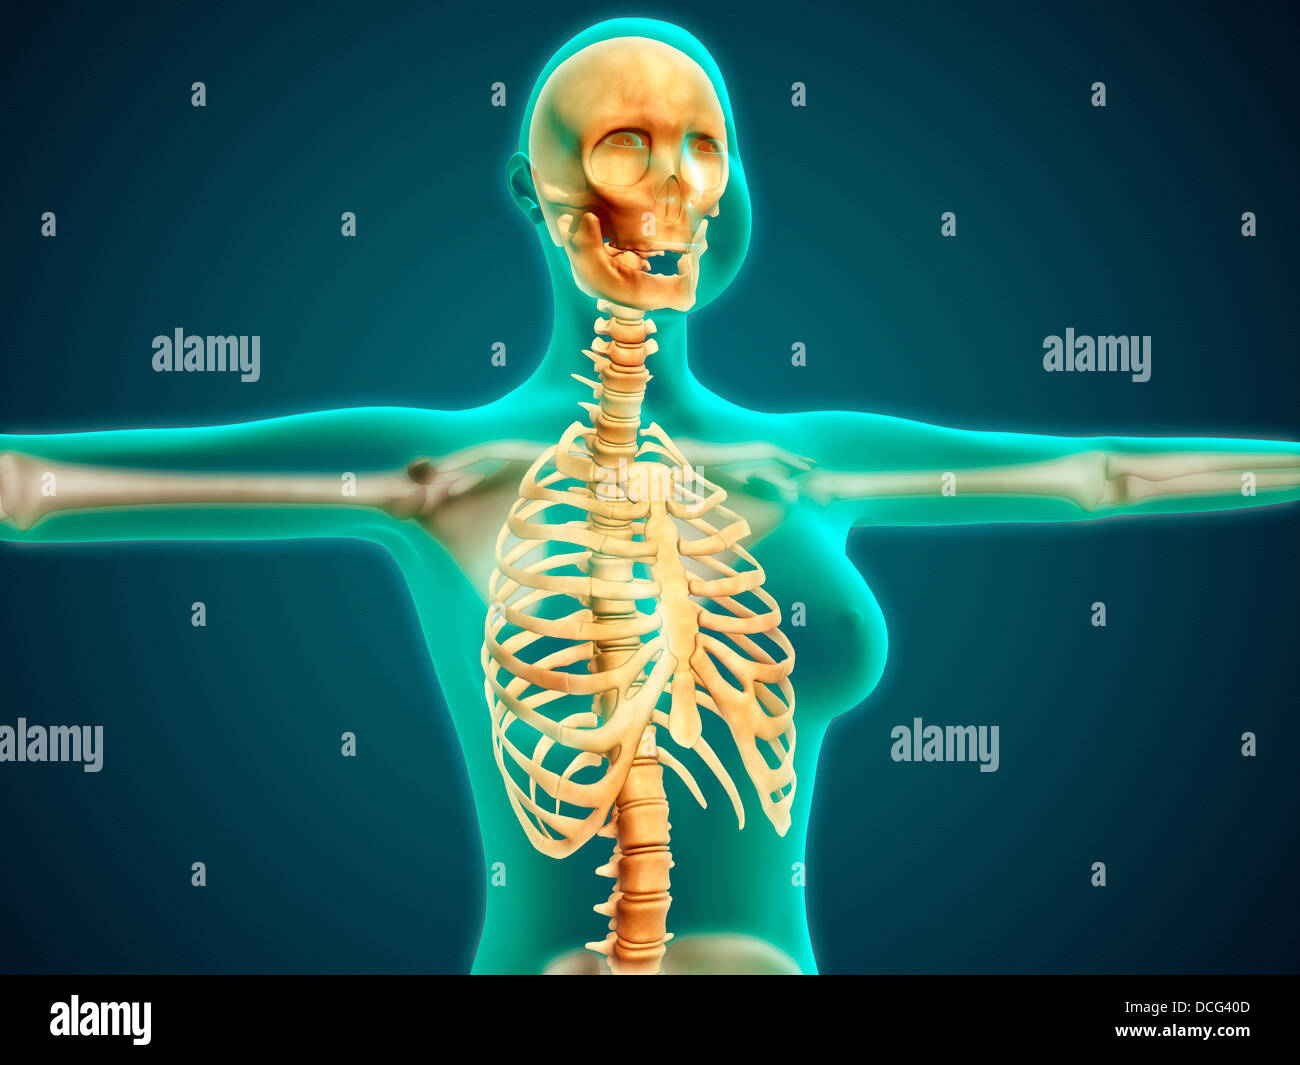 X-ray view of female upper body showing rib cage, spine and skull ...